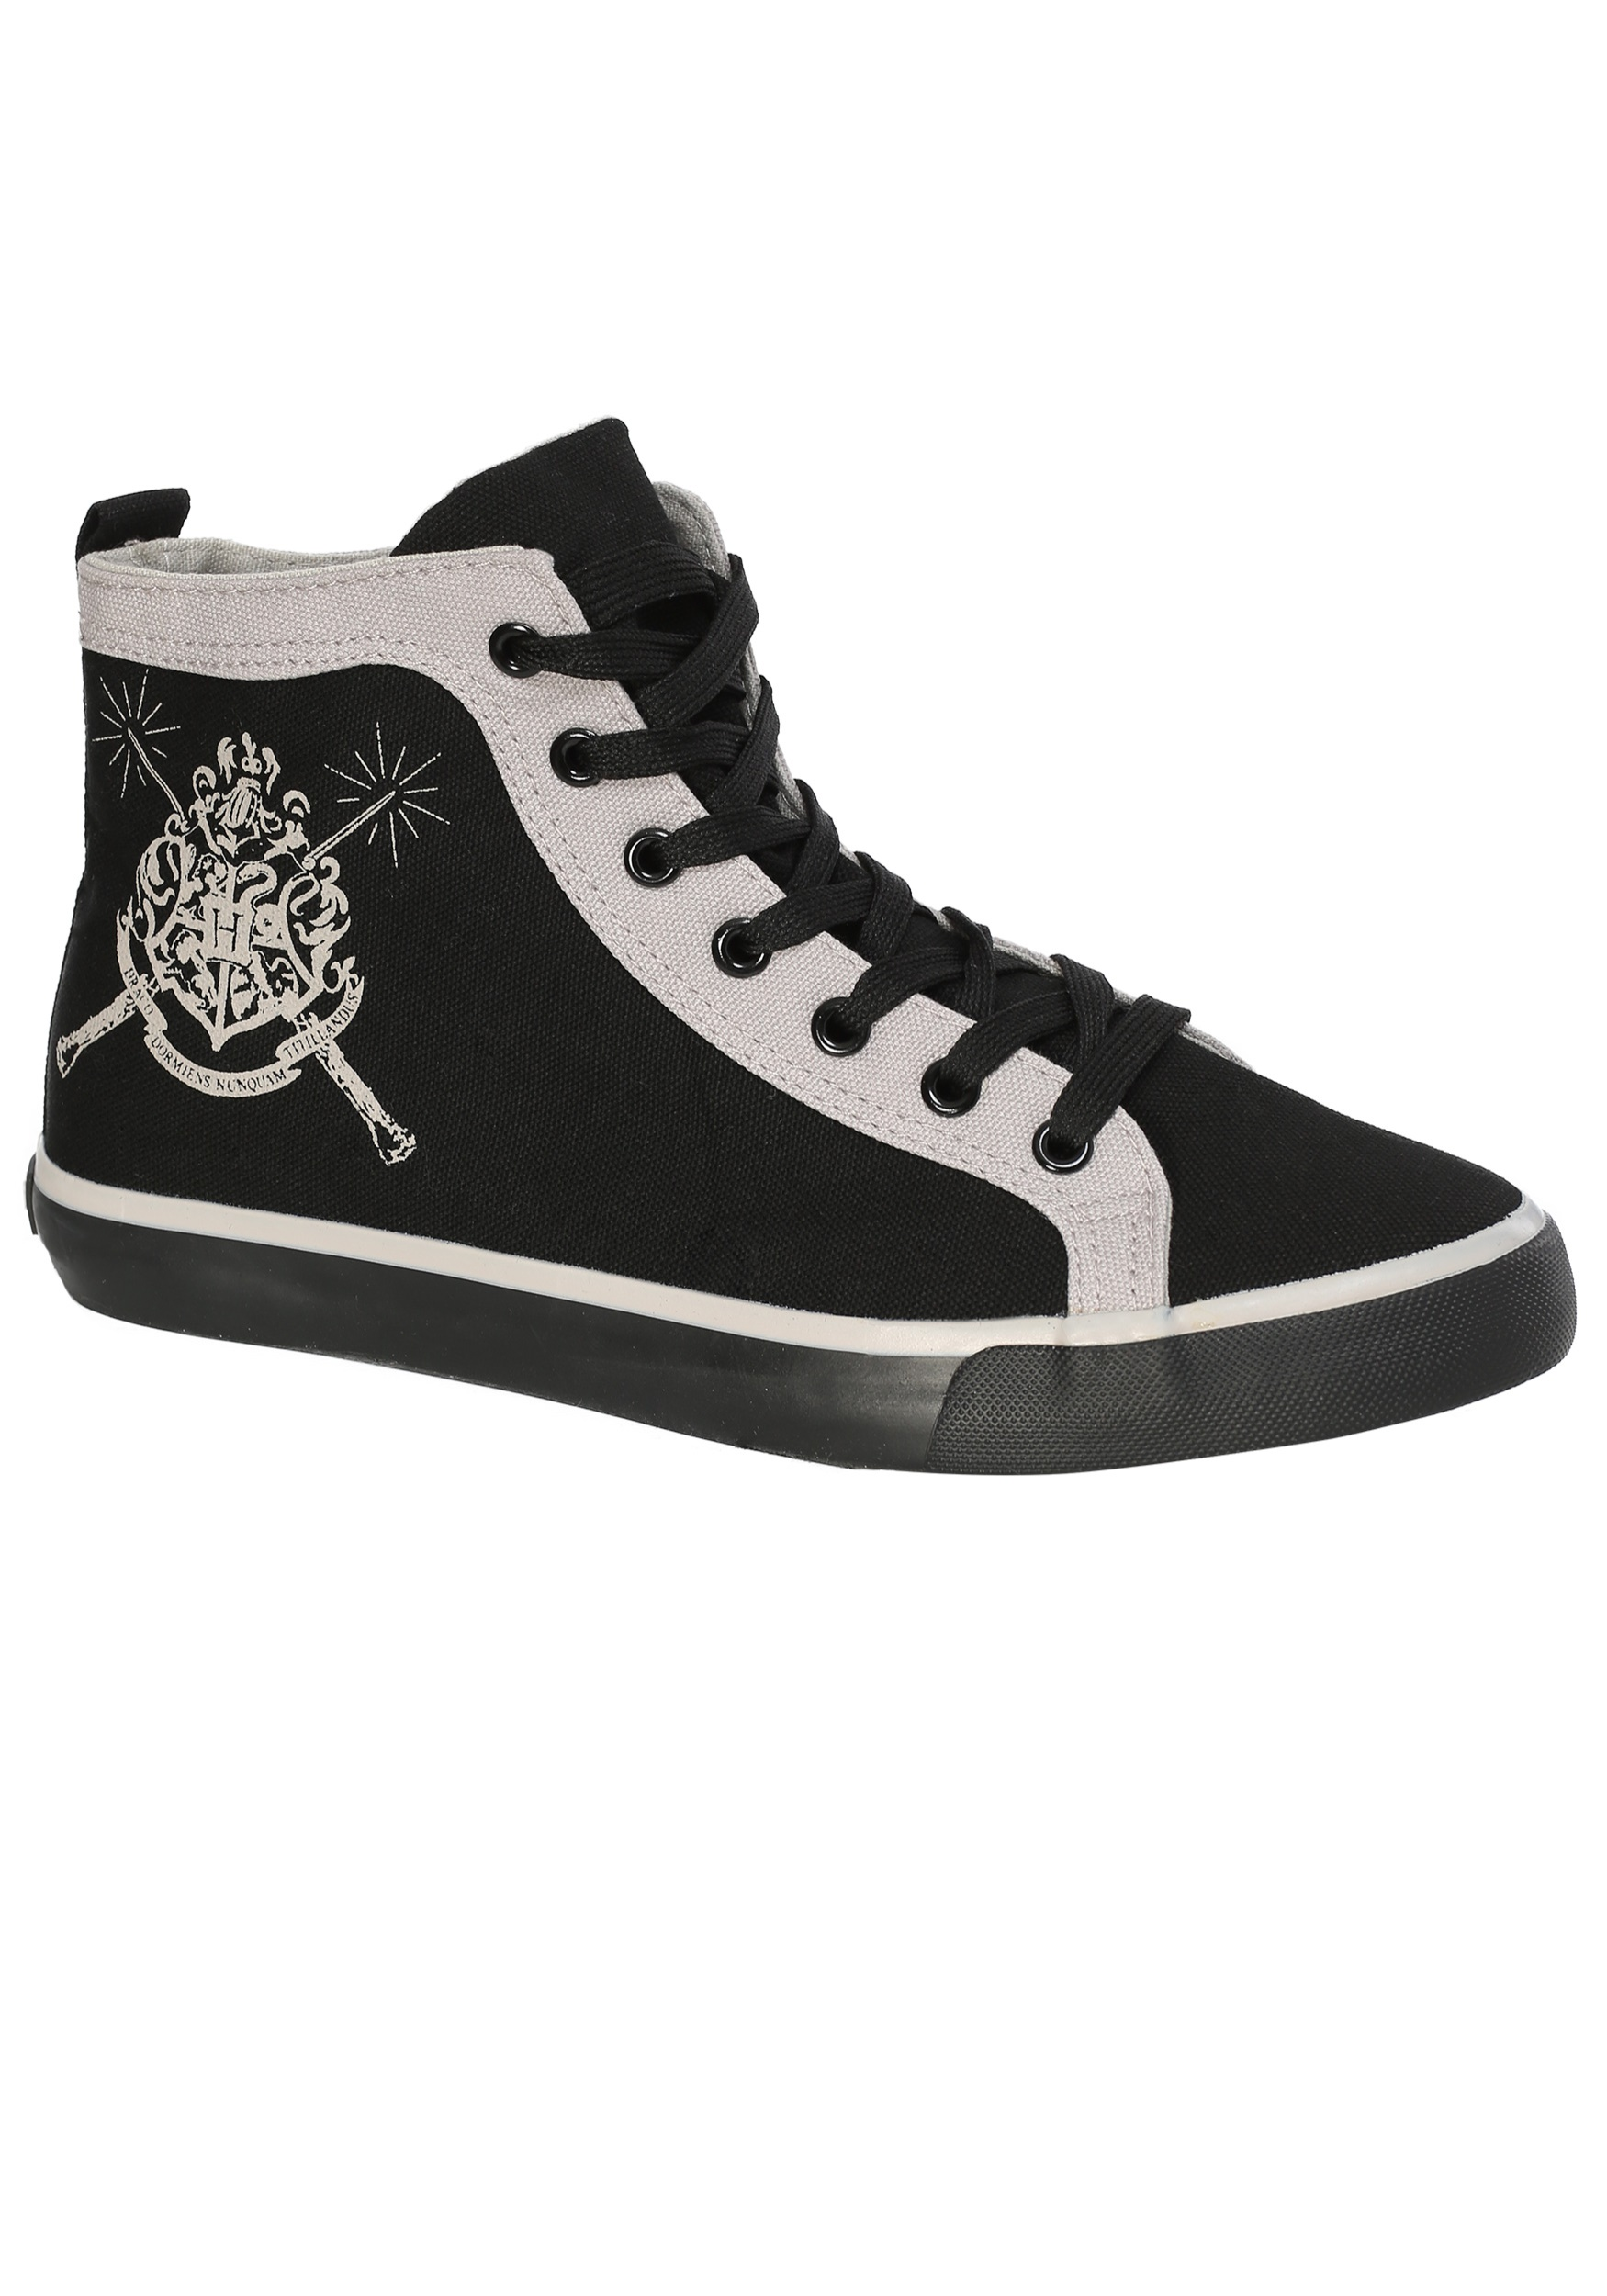 Harry Potter High Top Adult Shoes